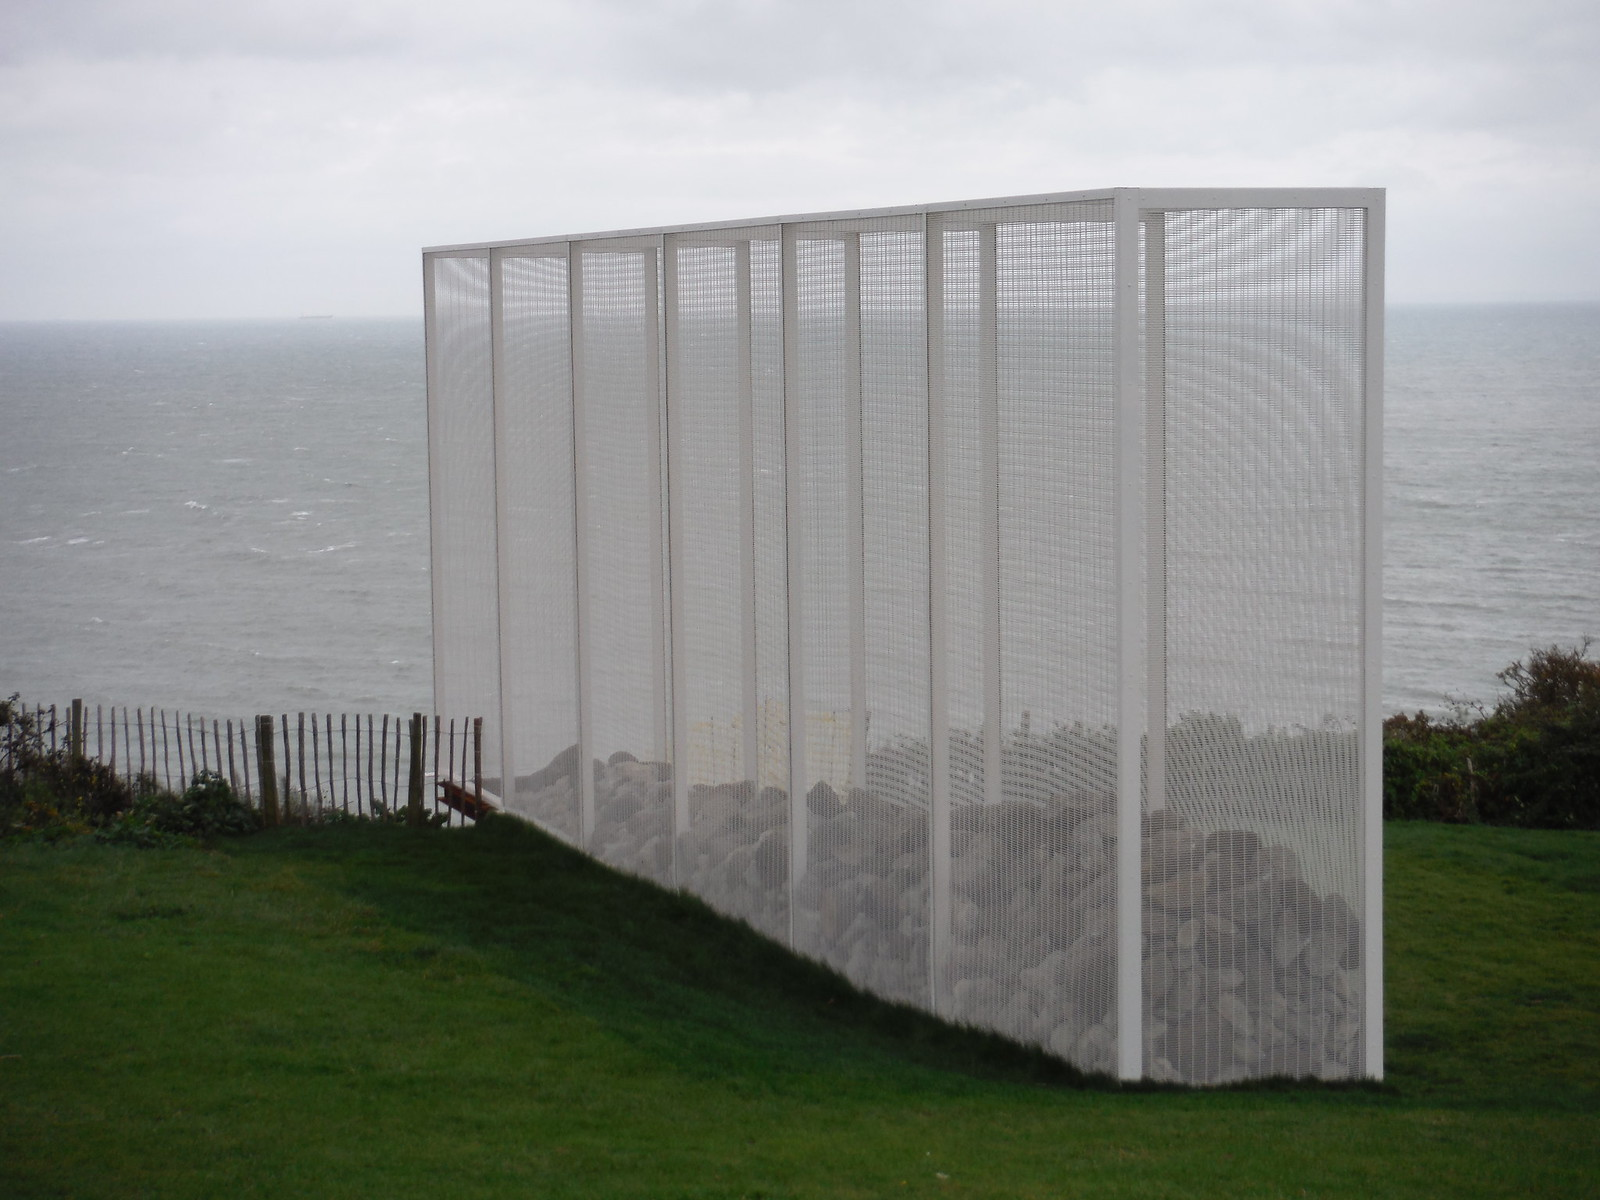 Folkestone Triennial: Alex Hartley - Wall [East Cliff] SWC Walk 93 - North Downs Way: Sandling to Folkestone or Dover